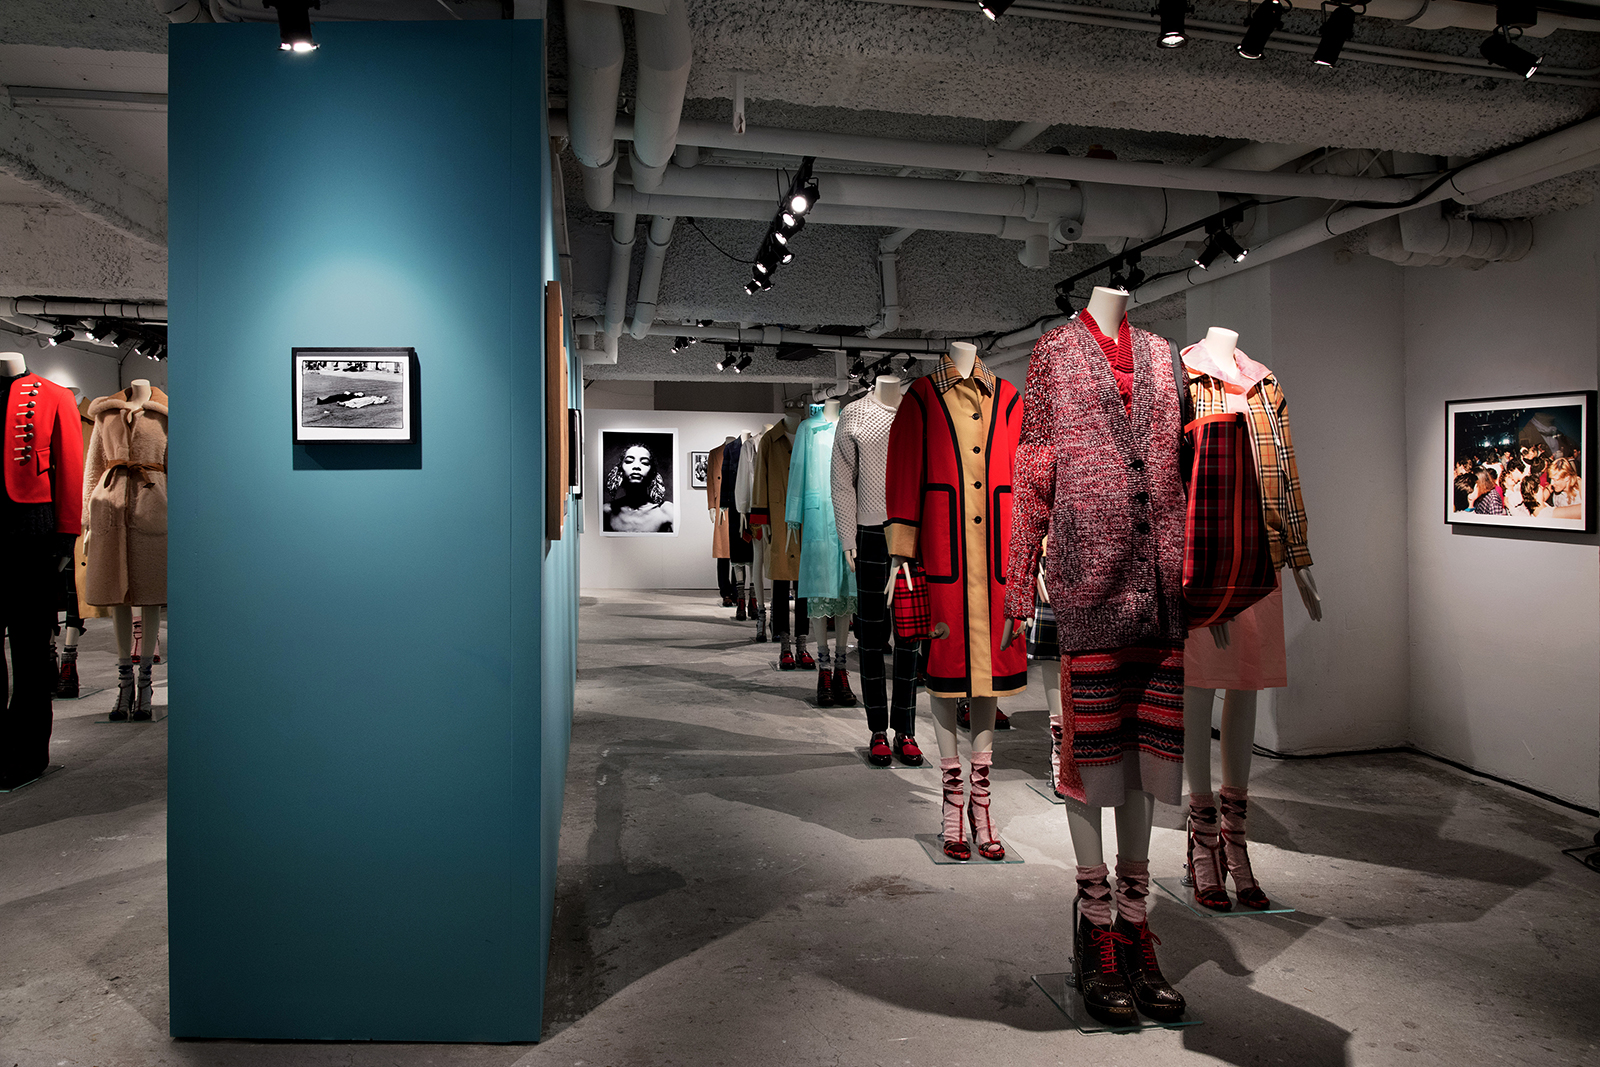 Burberrys-Here-We-Are-photography-exhibition-in-Hong-Kong_002.jpg